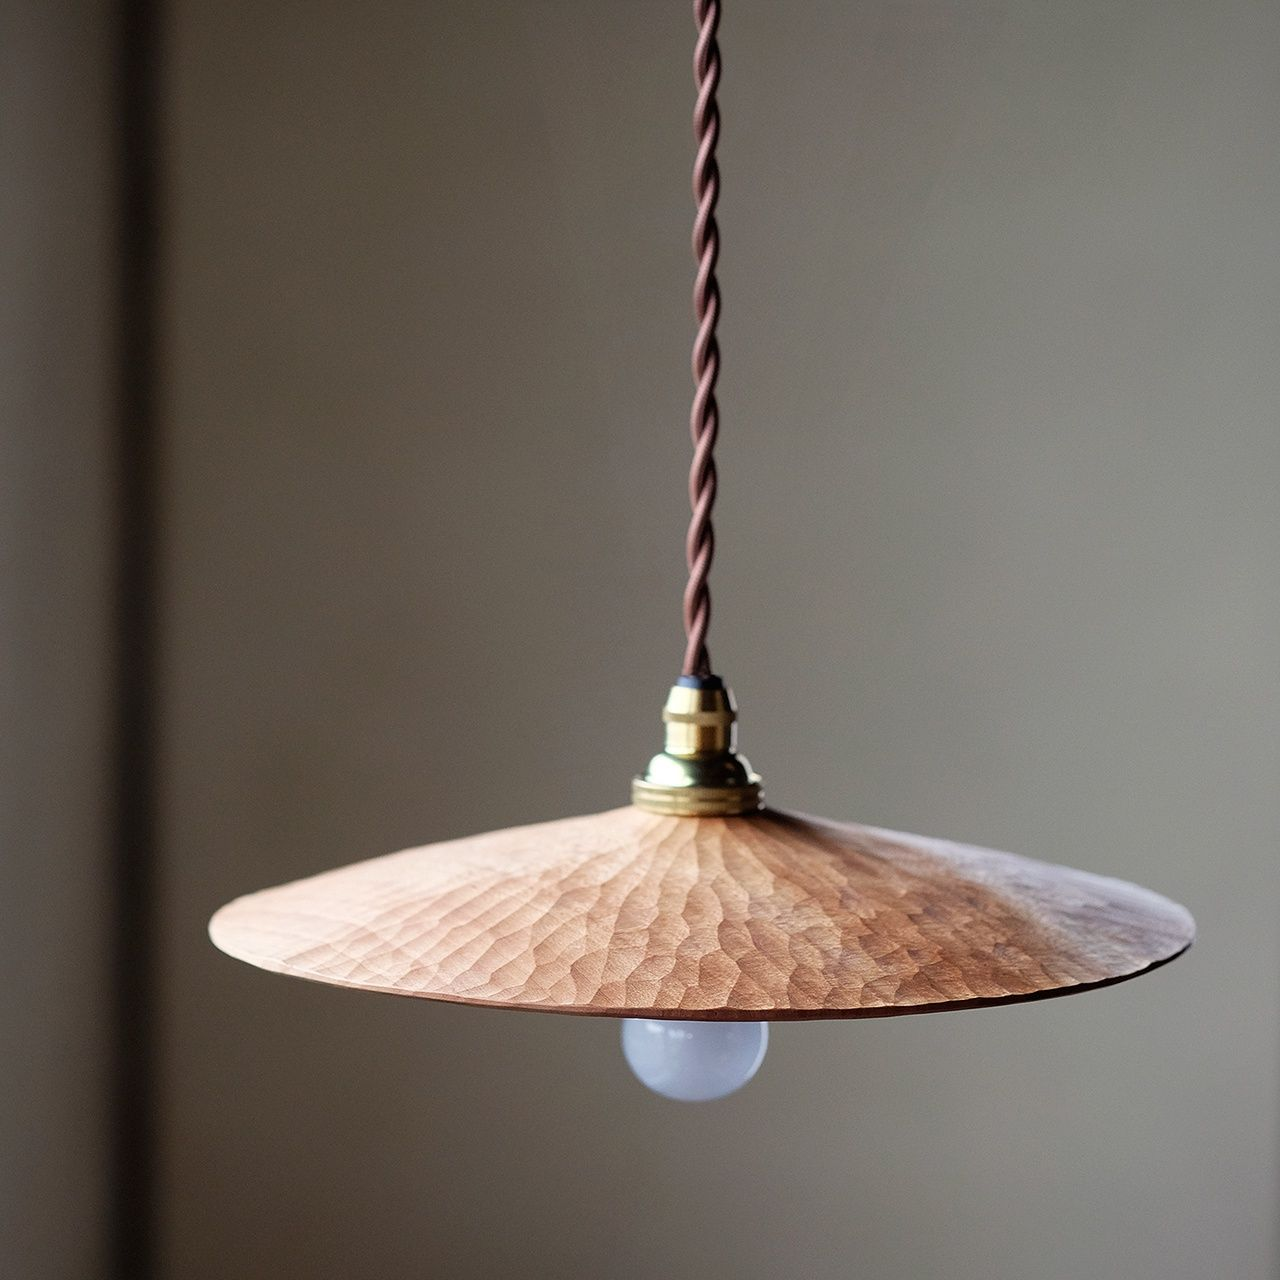 Wooden Light Pendants Hiroyuki Wantanabe Wooden Pendant Wood Stone And All